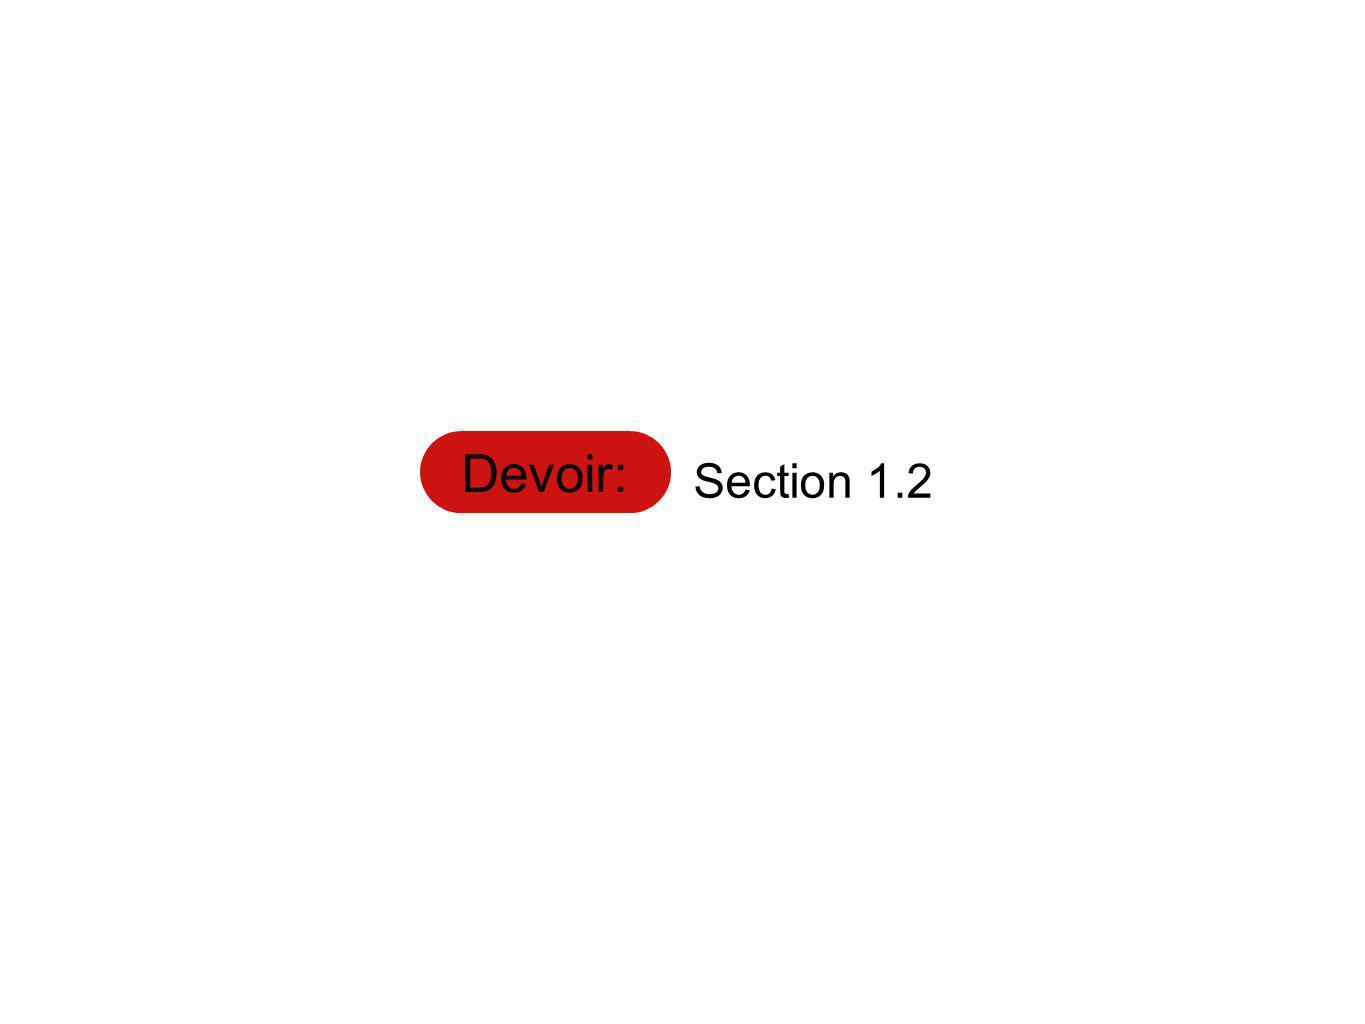 Devoir: Section 1.2